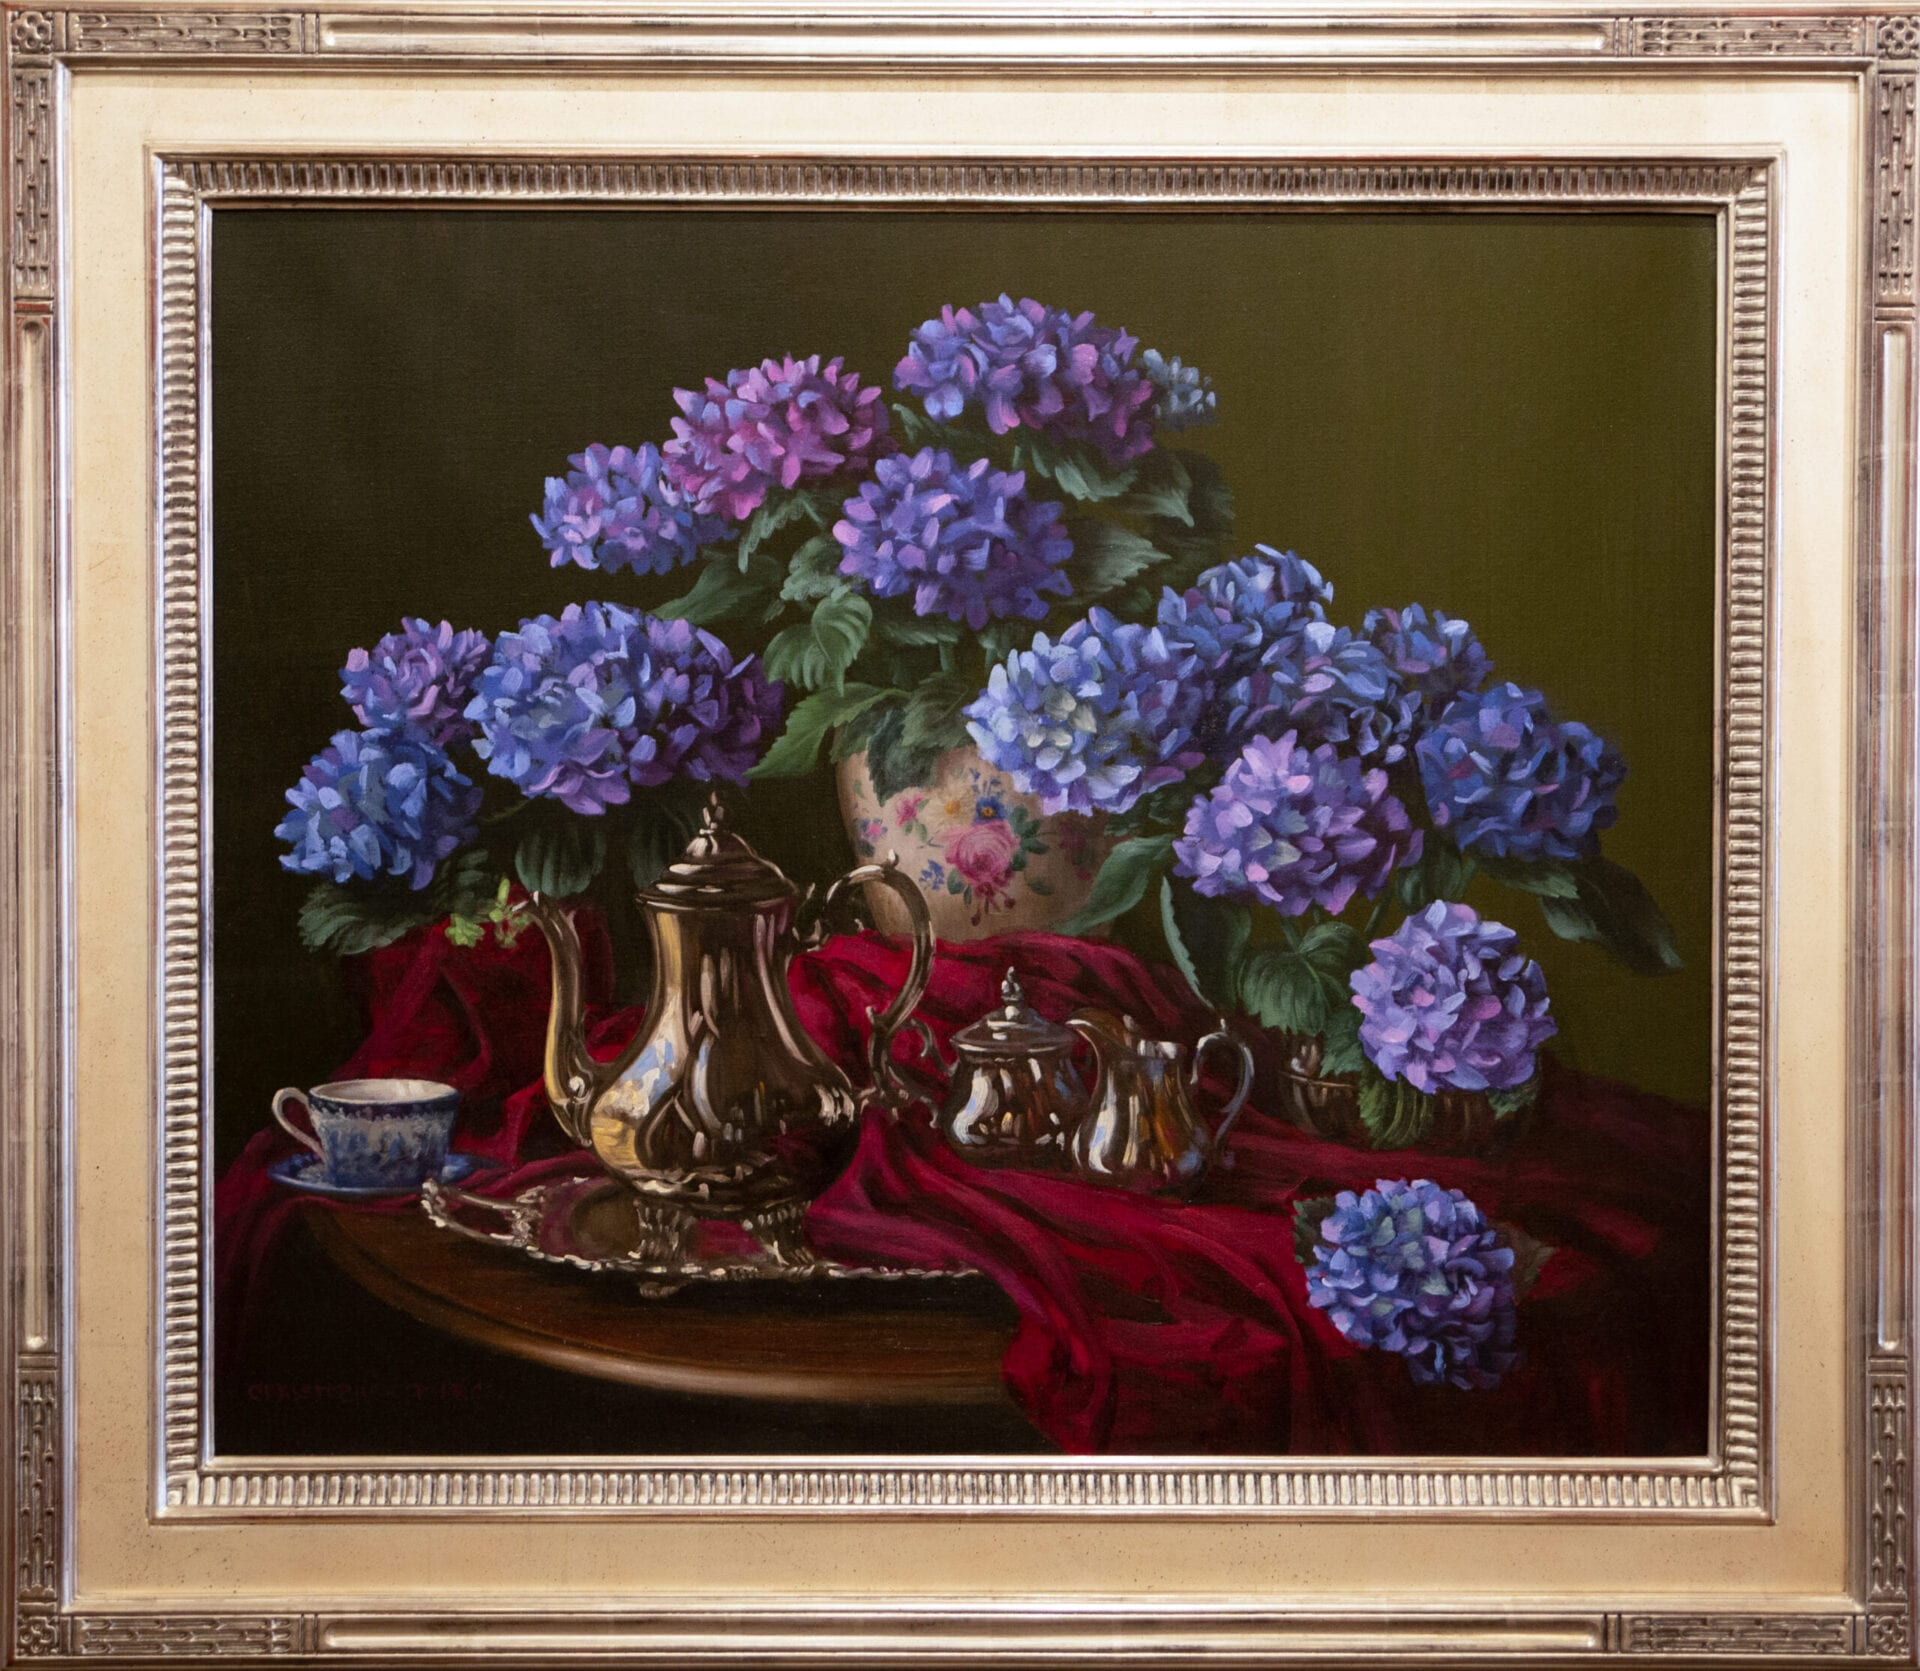 Blue Hydrangeas and Tea | Christopher Pierce | Oil | 30 x 36""